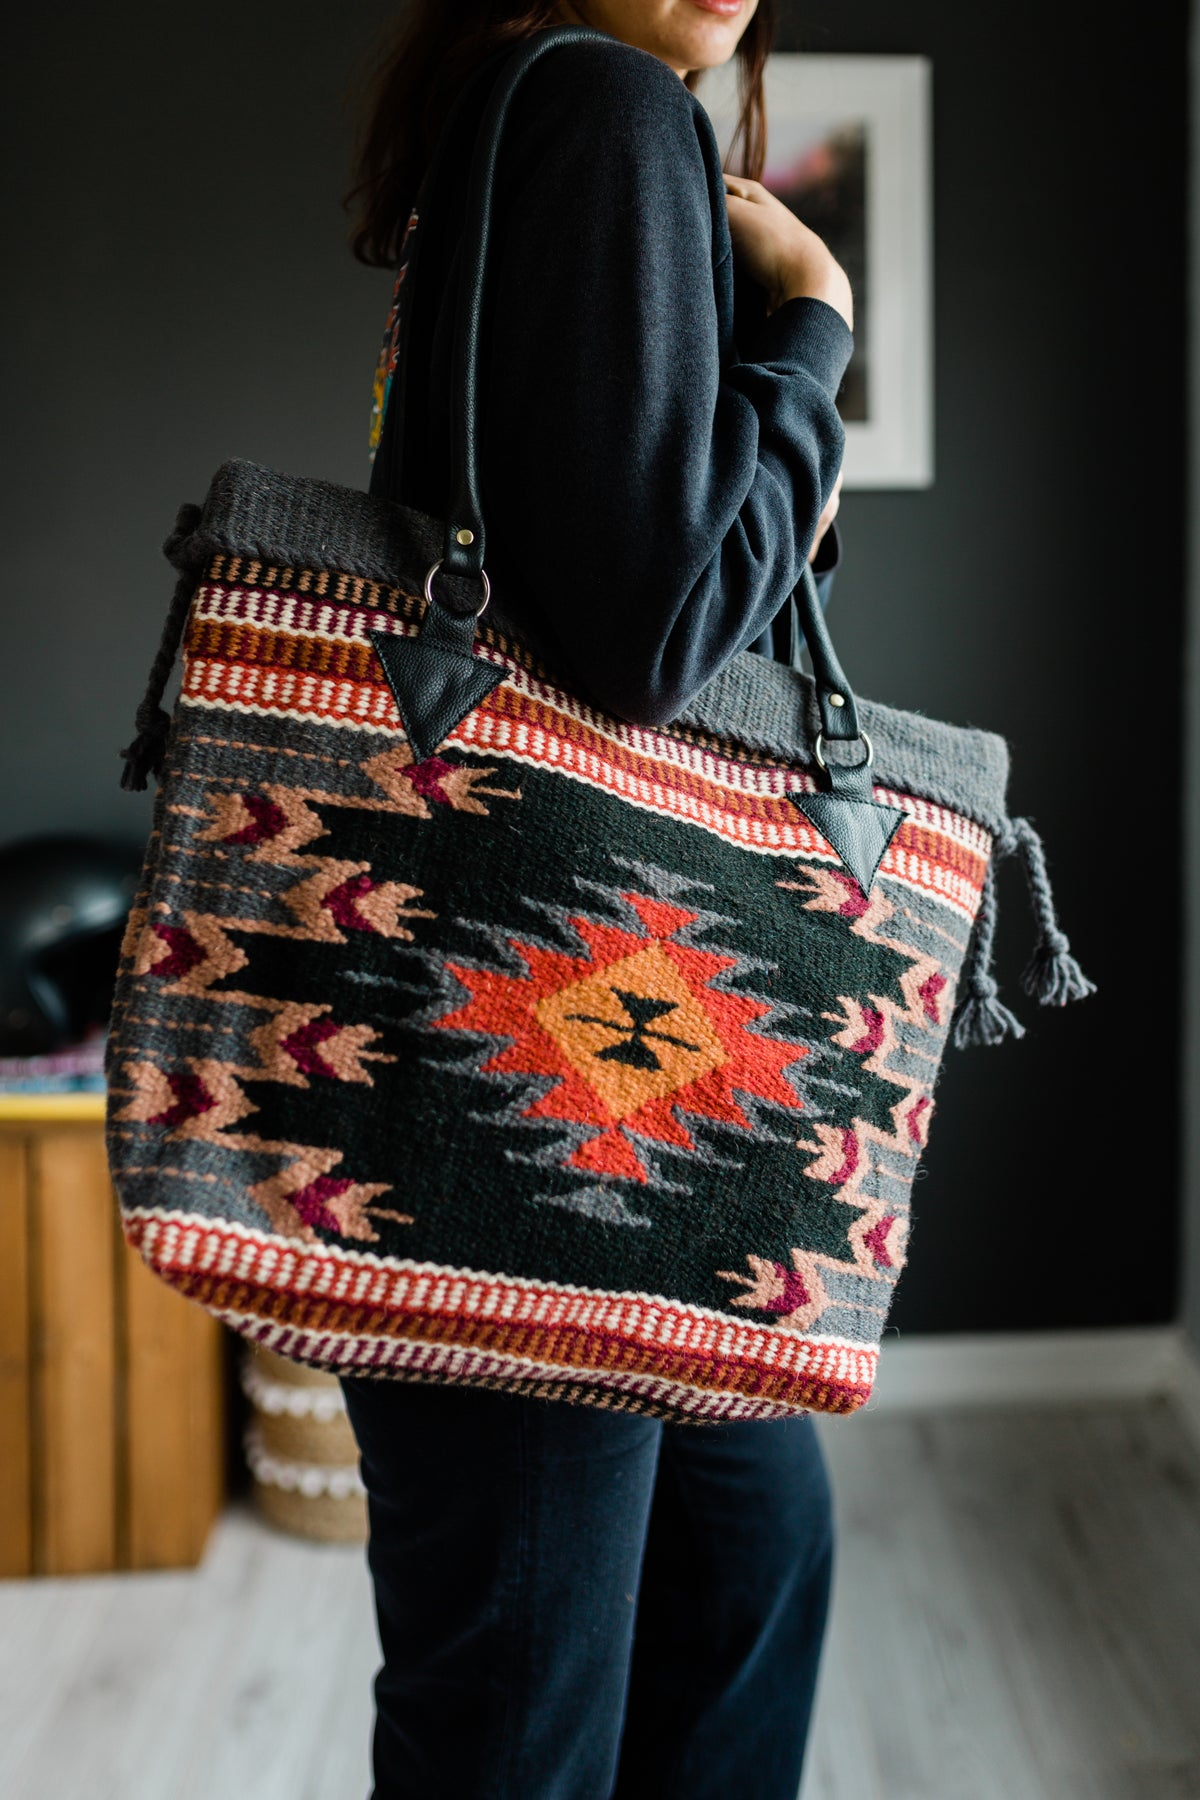 Image of The Valerie - Handwoven Wool Bag